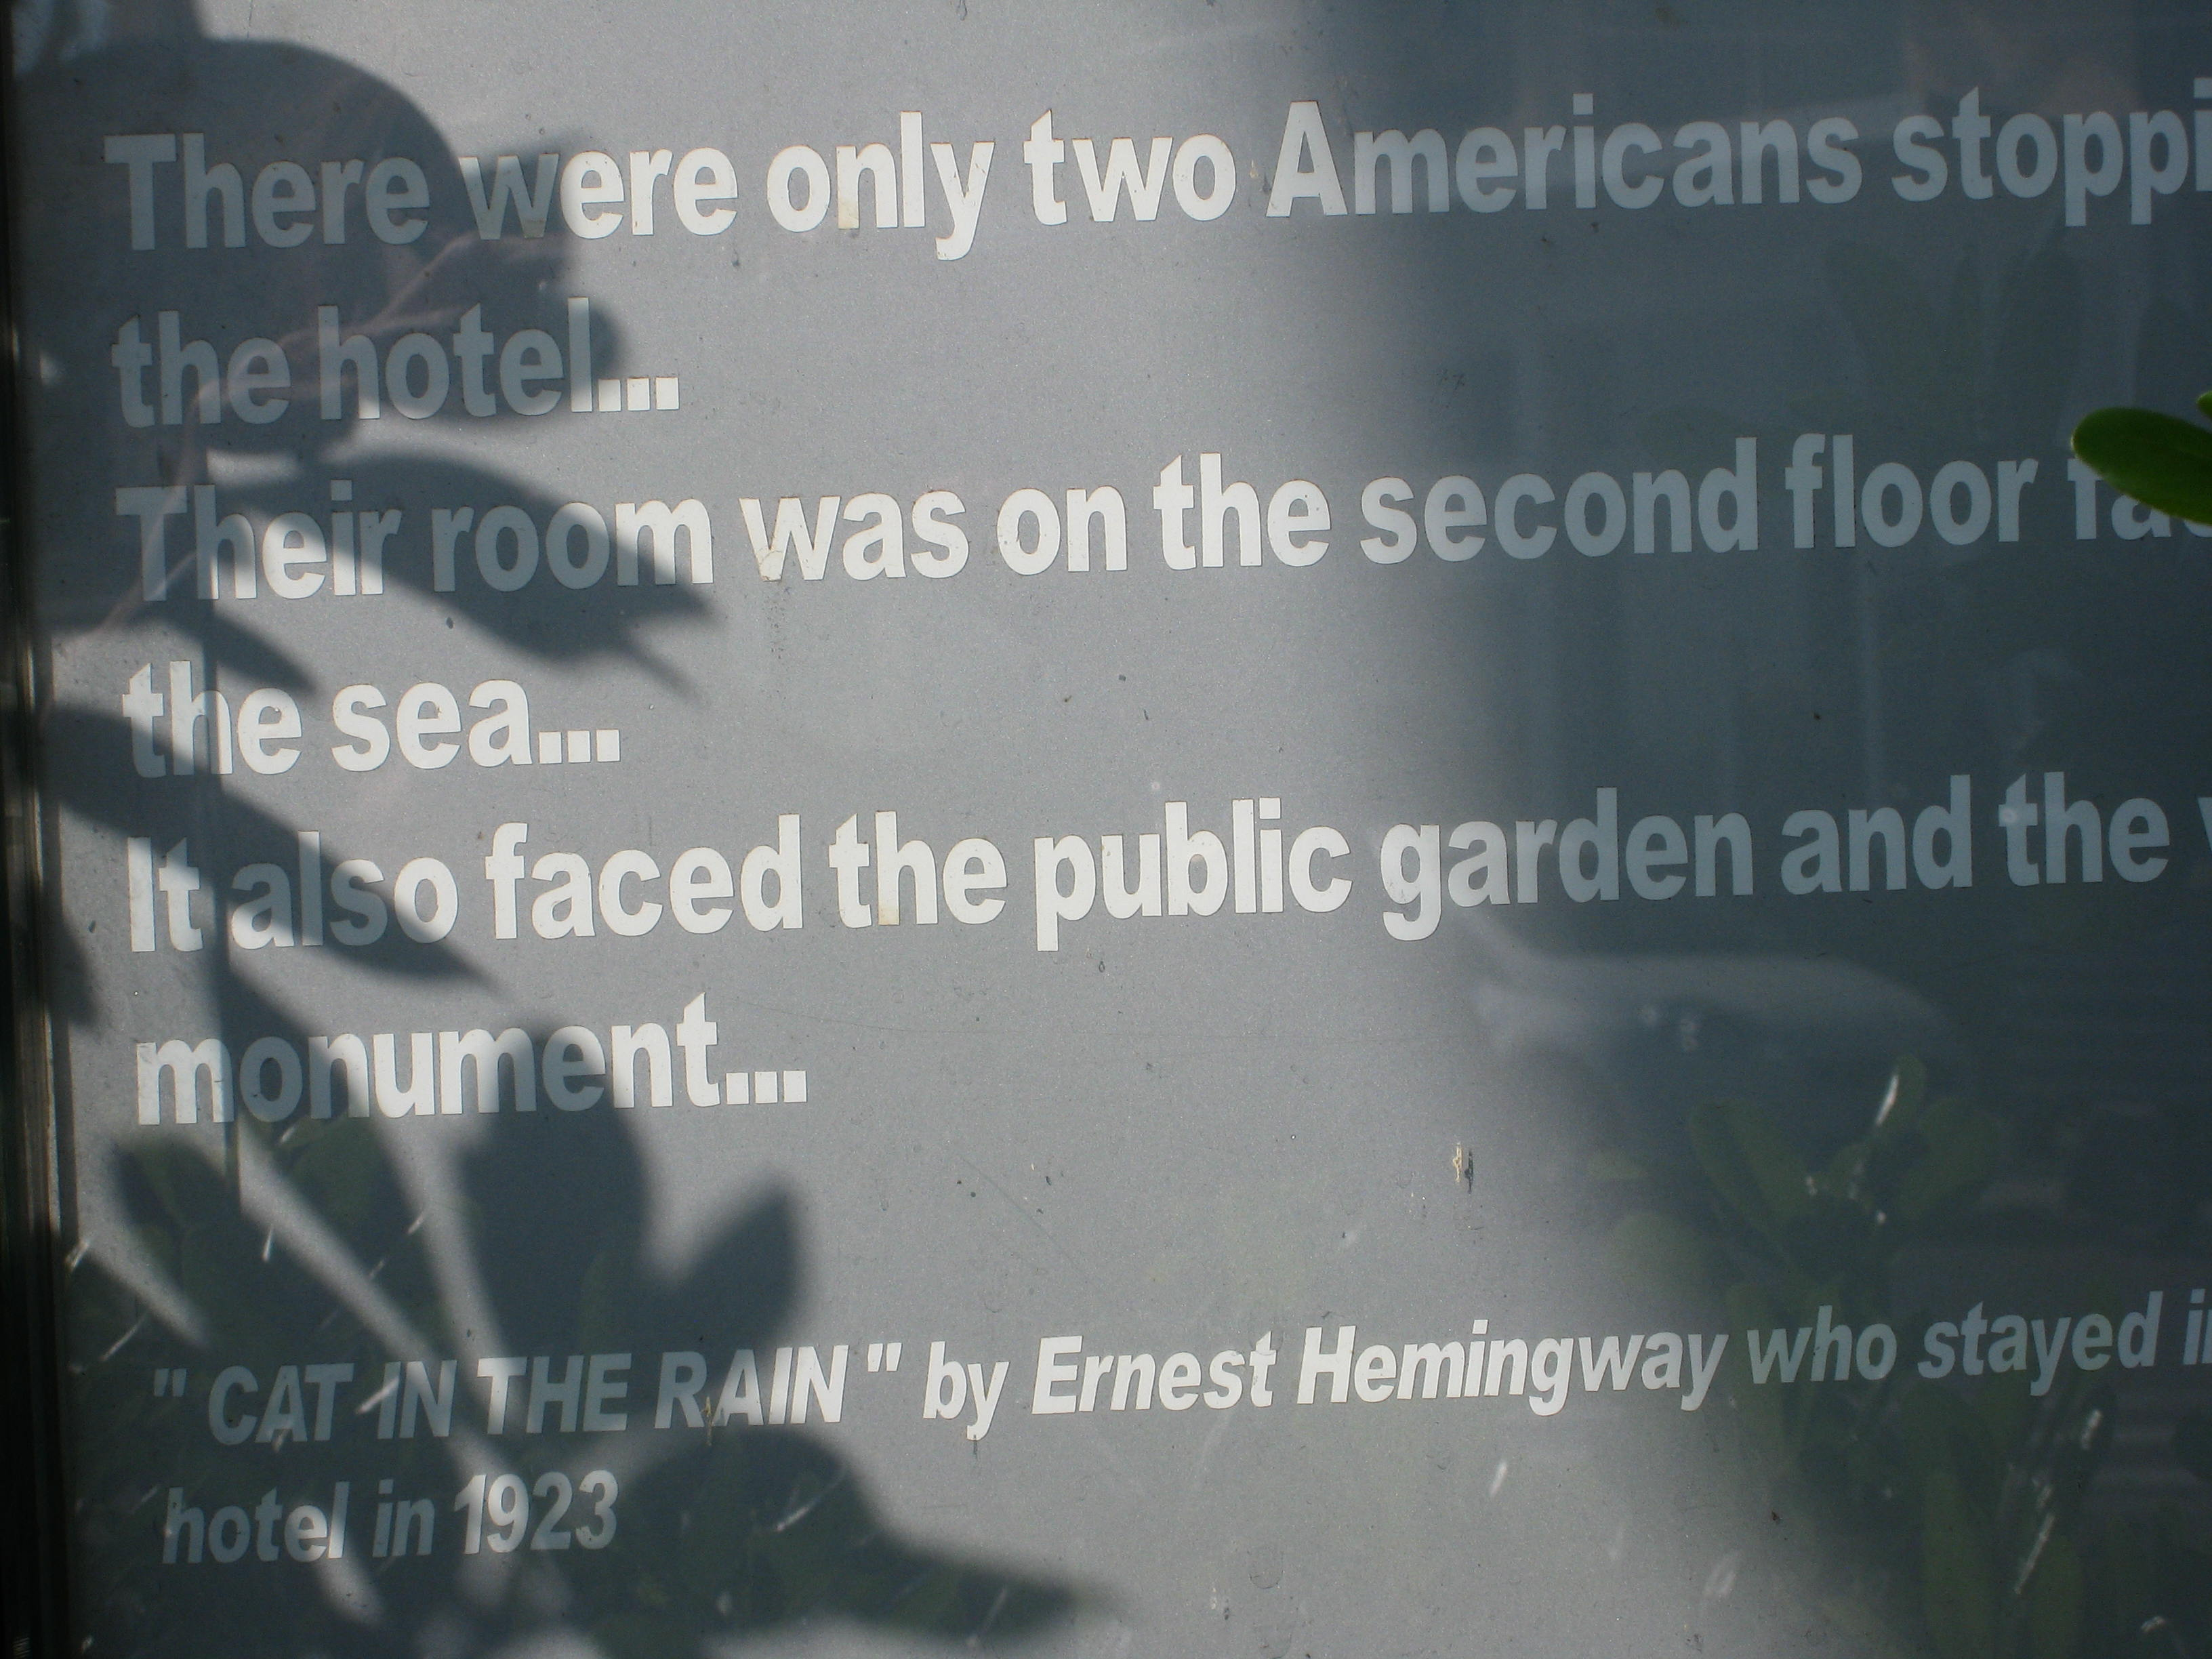 ernst hemingway cat in the rain Analysis of cat in the rain by ernest hemingway 5 pages 1334 words january 2015 saved essays save your essays here so you can locate them quickly.